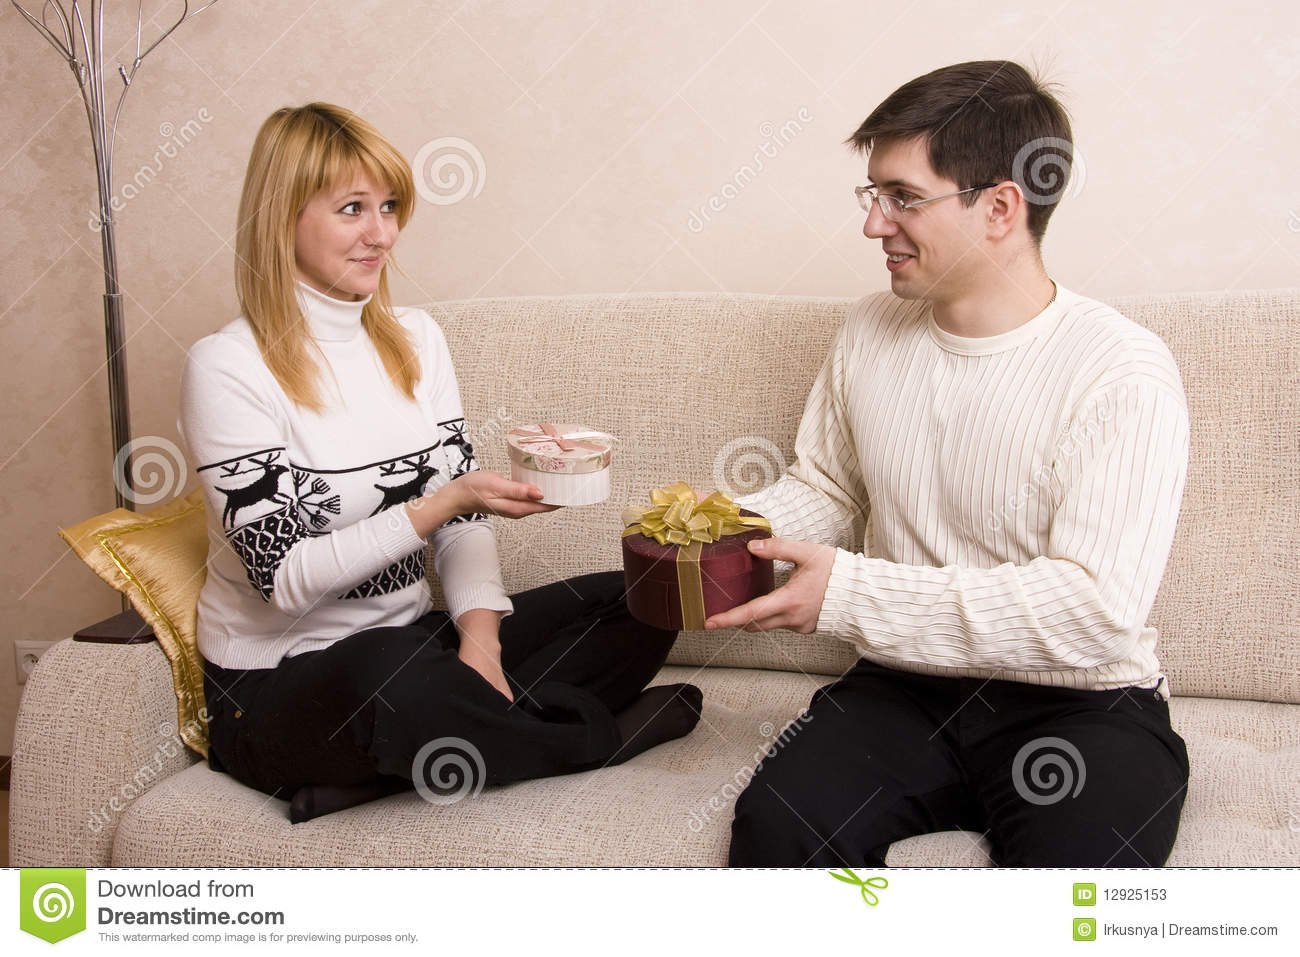 Man is giving gifts woman at Valentine?s day.